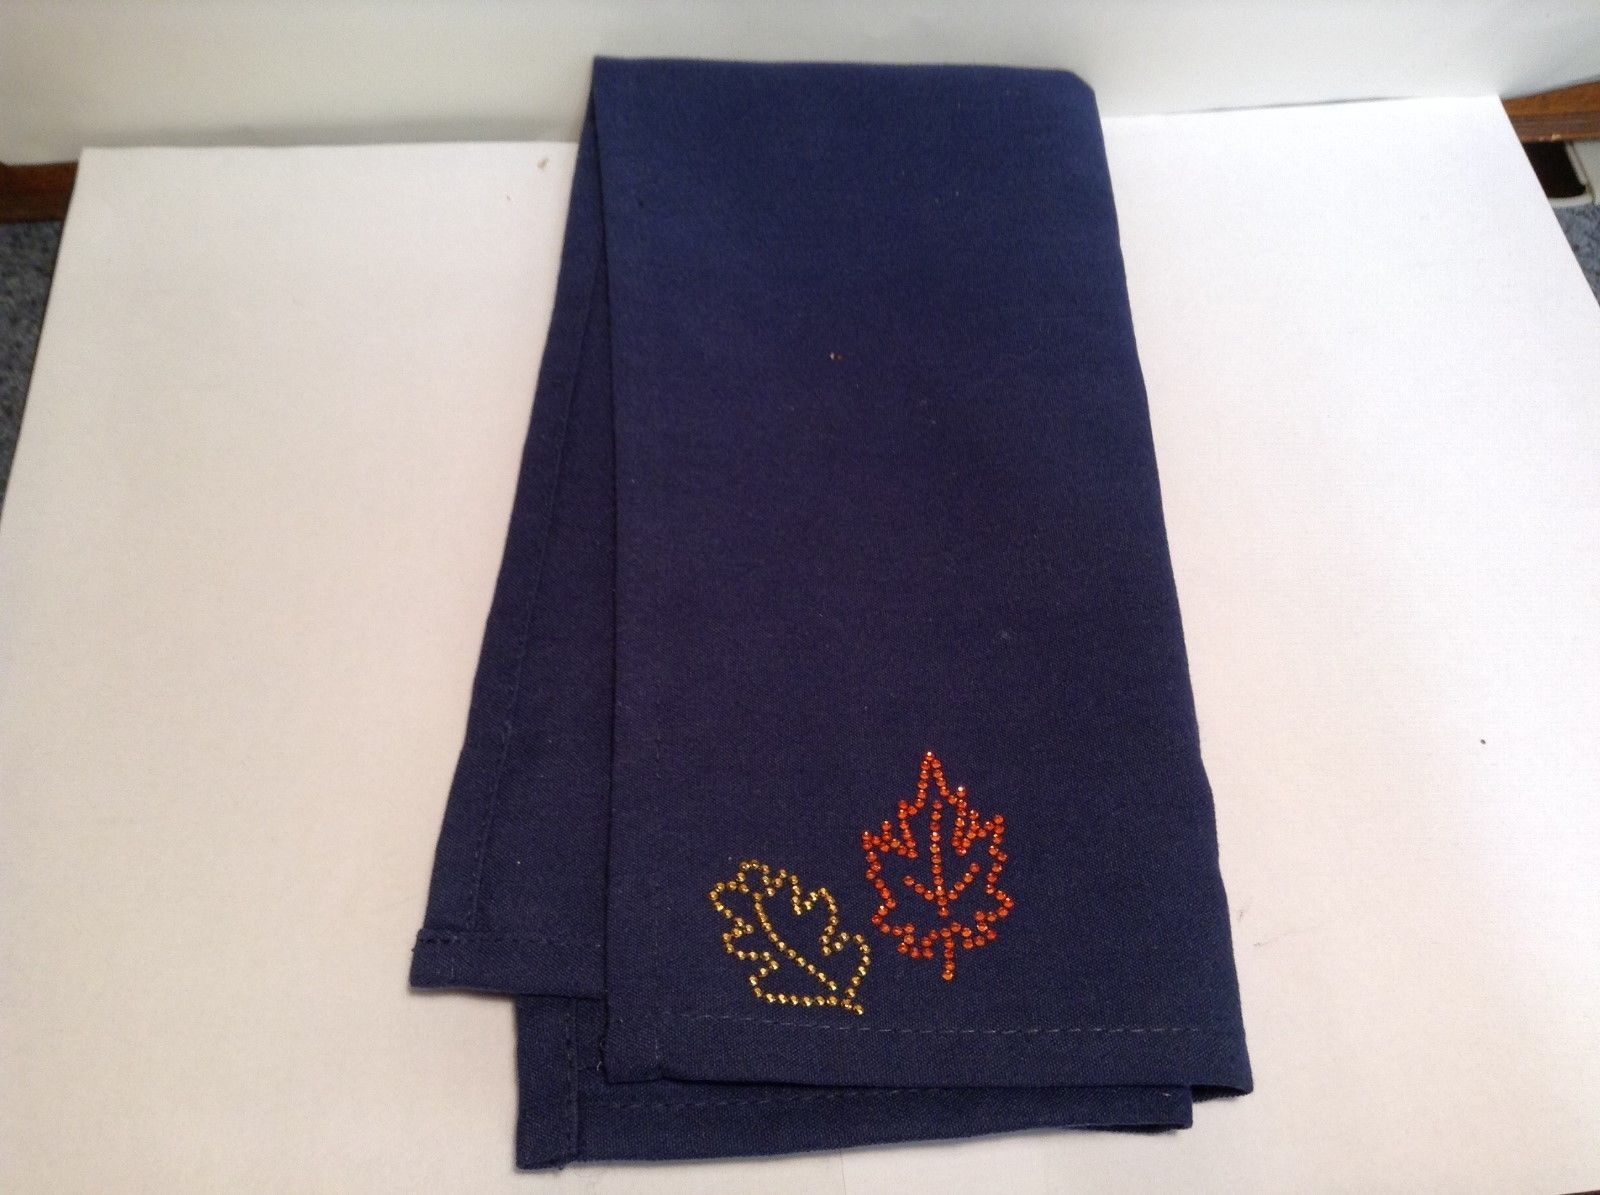 NEW Lyn Dorf Navy Blue Napkin w Studded Autumn Corner Leaves